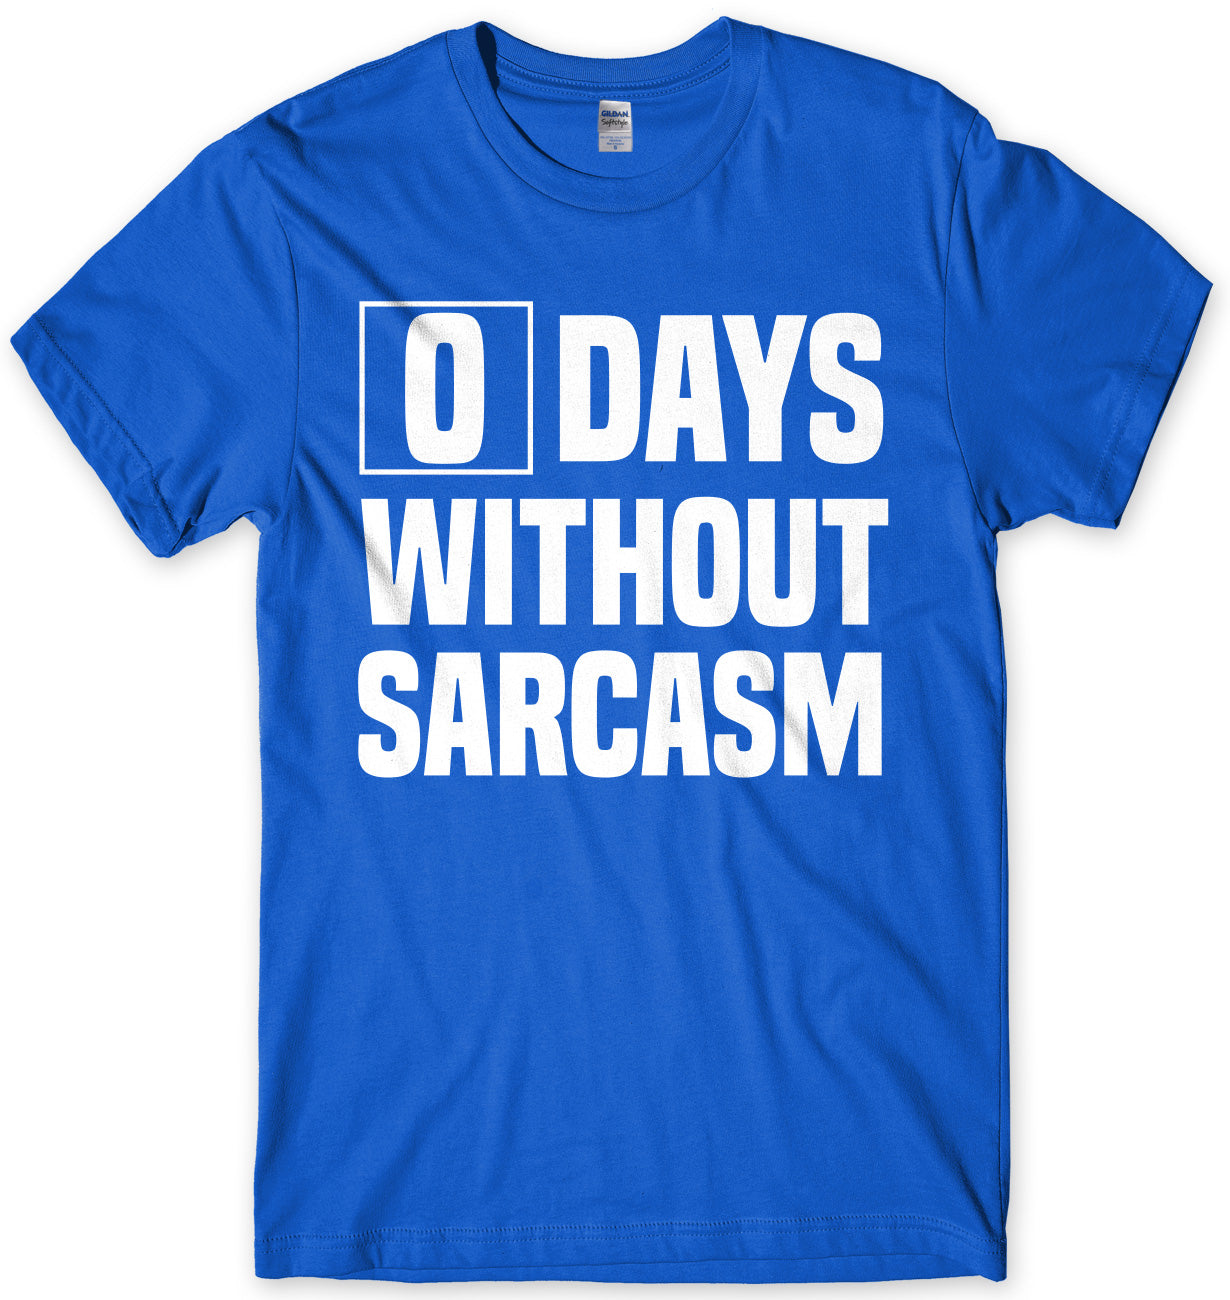 0 Days Without Sarcasm Mens Unisex T-Shirt